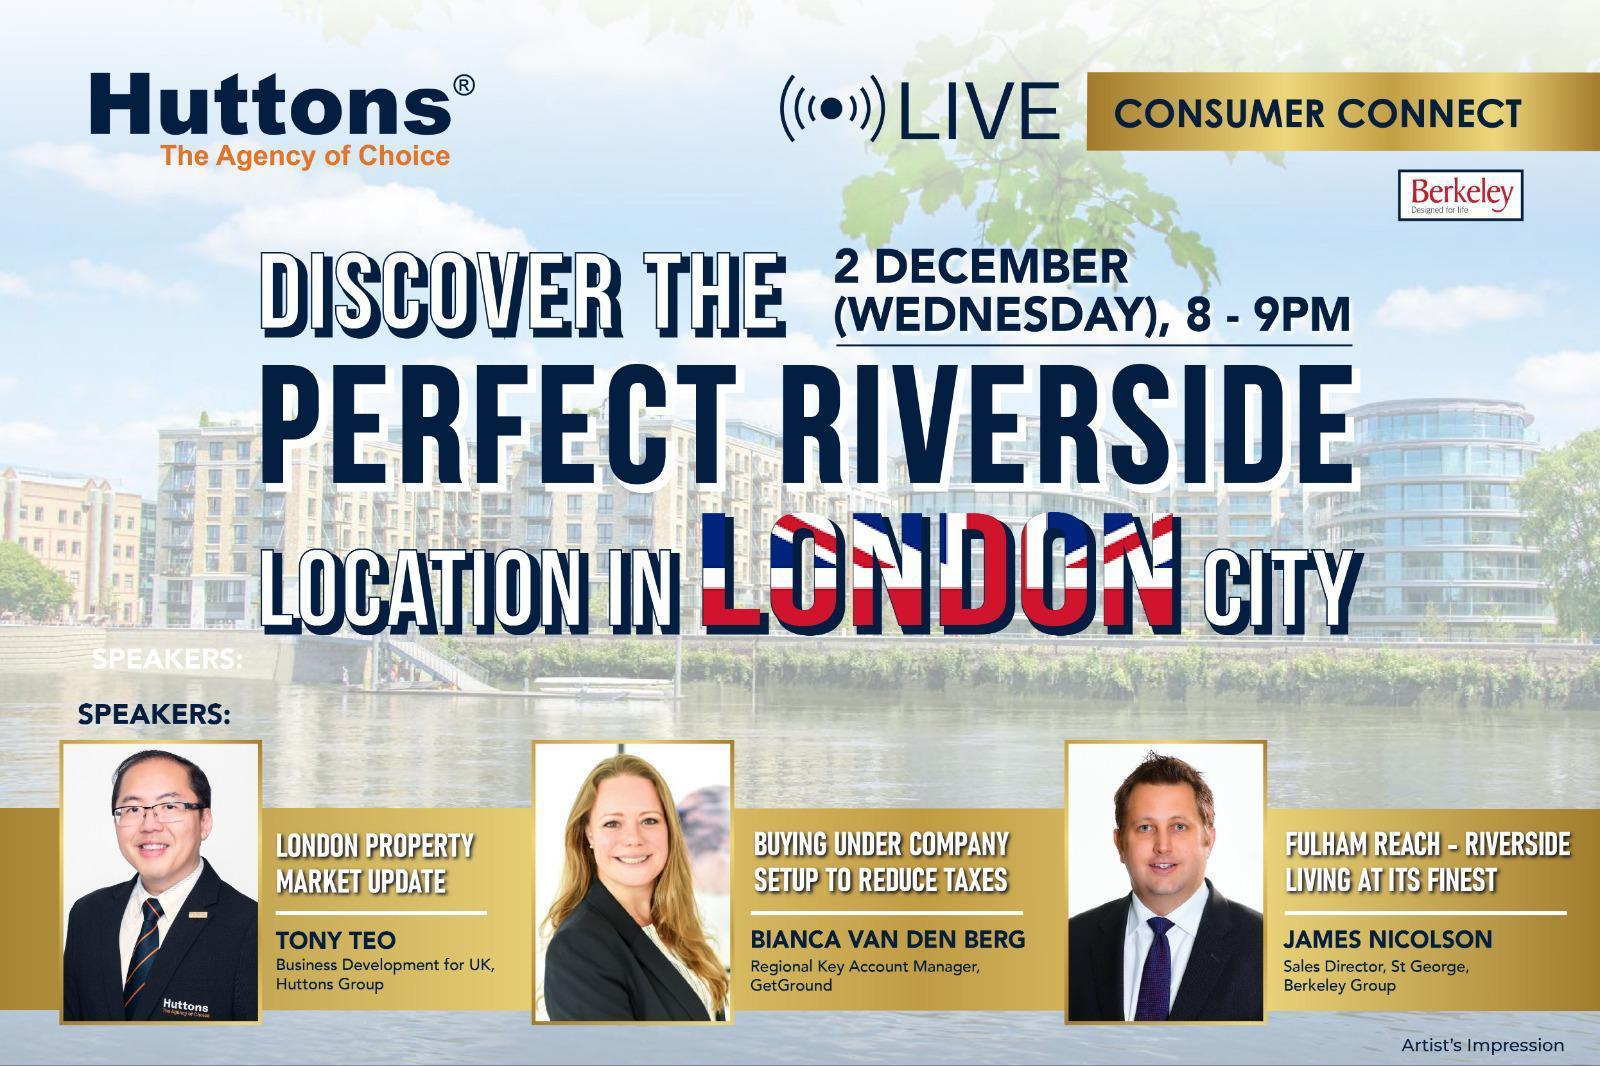 Huttons International Consumer Connect - Discover The Perfect Riverside Location in London City